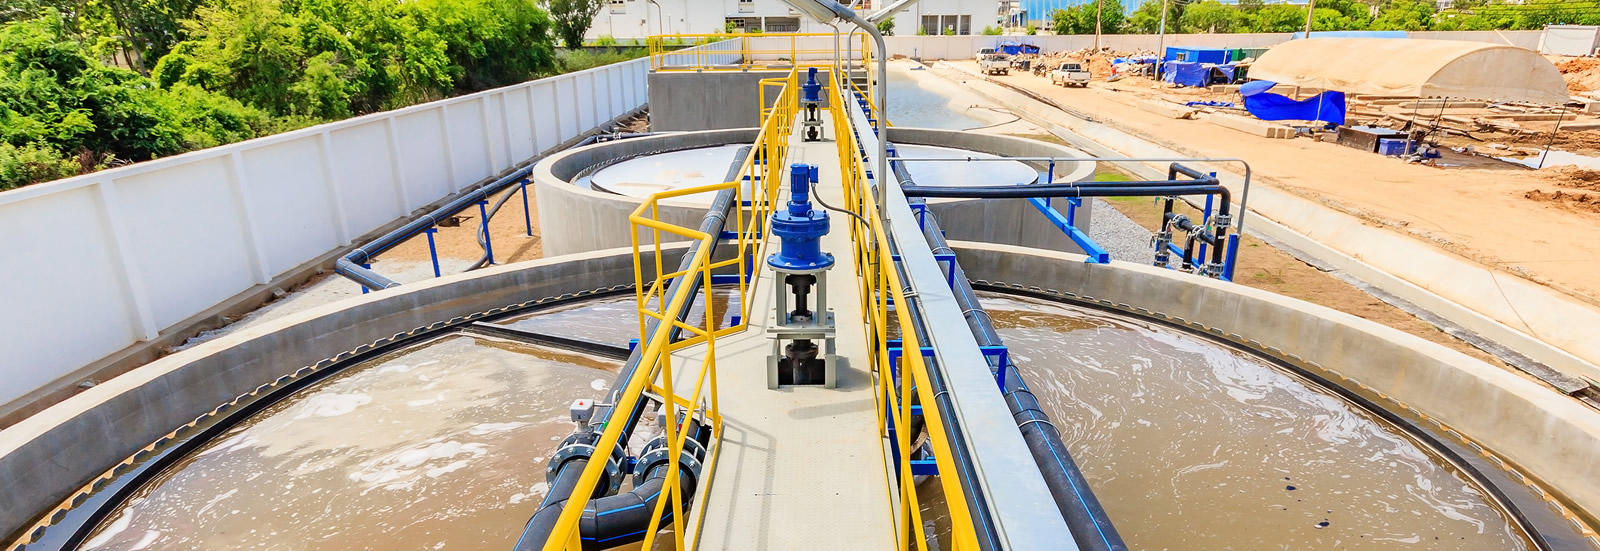 Wastewater Treatment Process Equipment